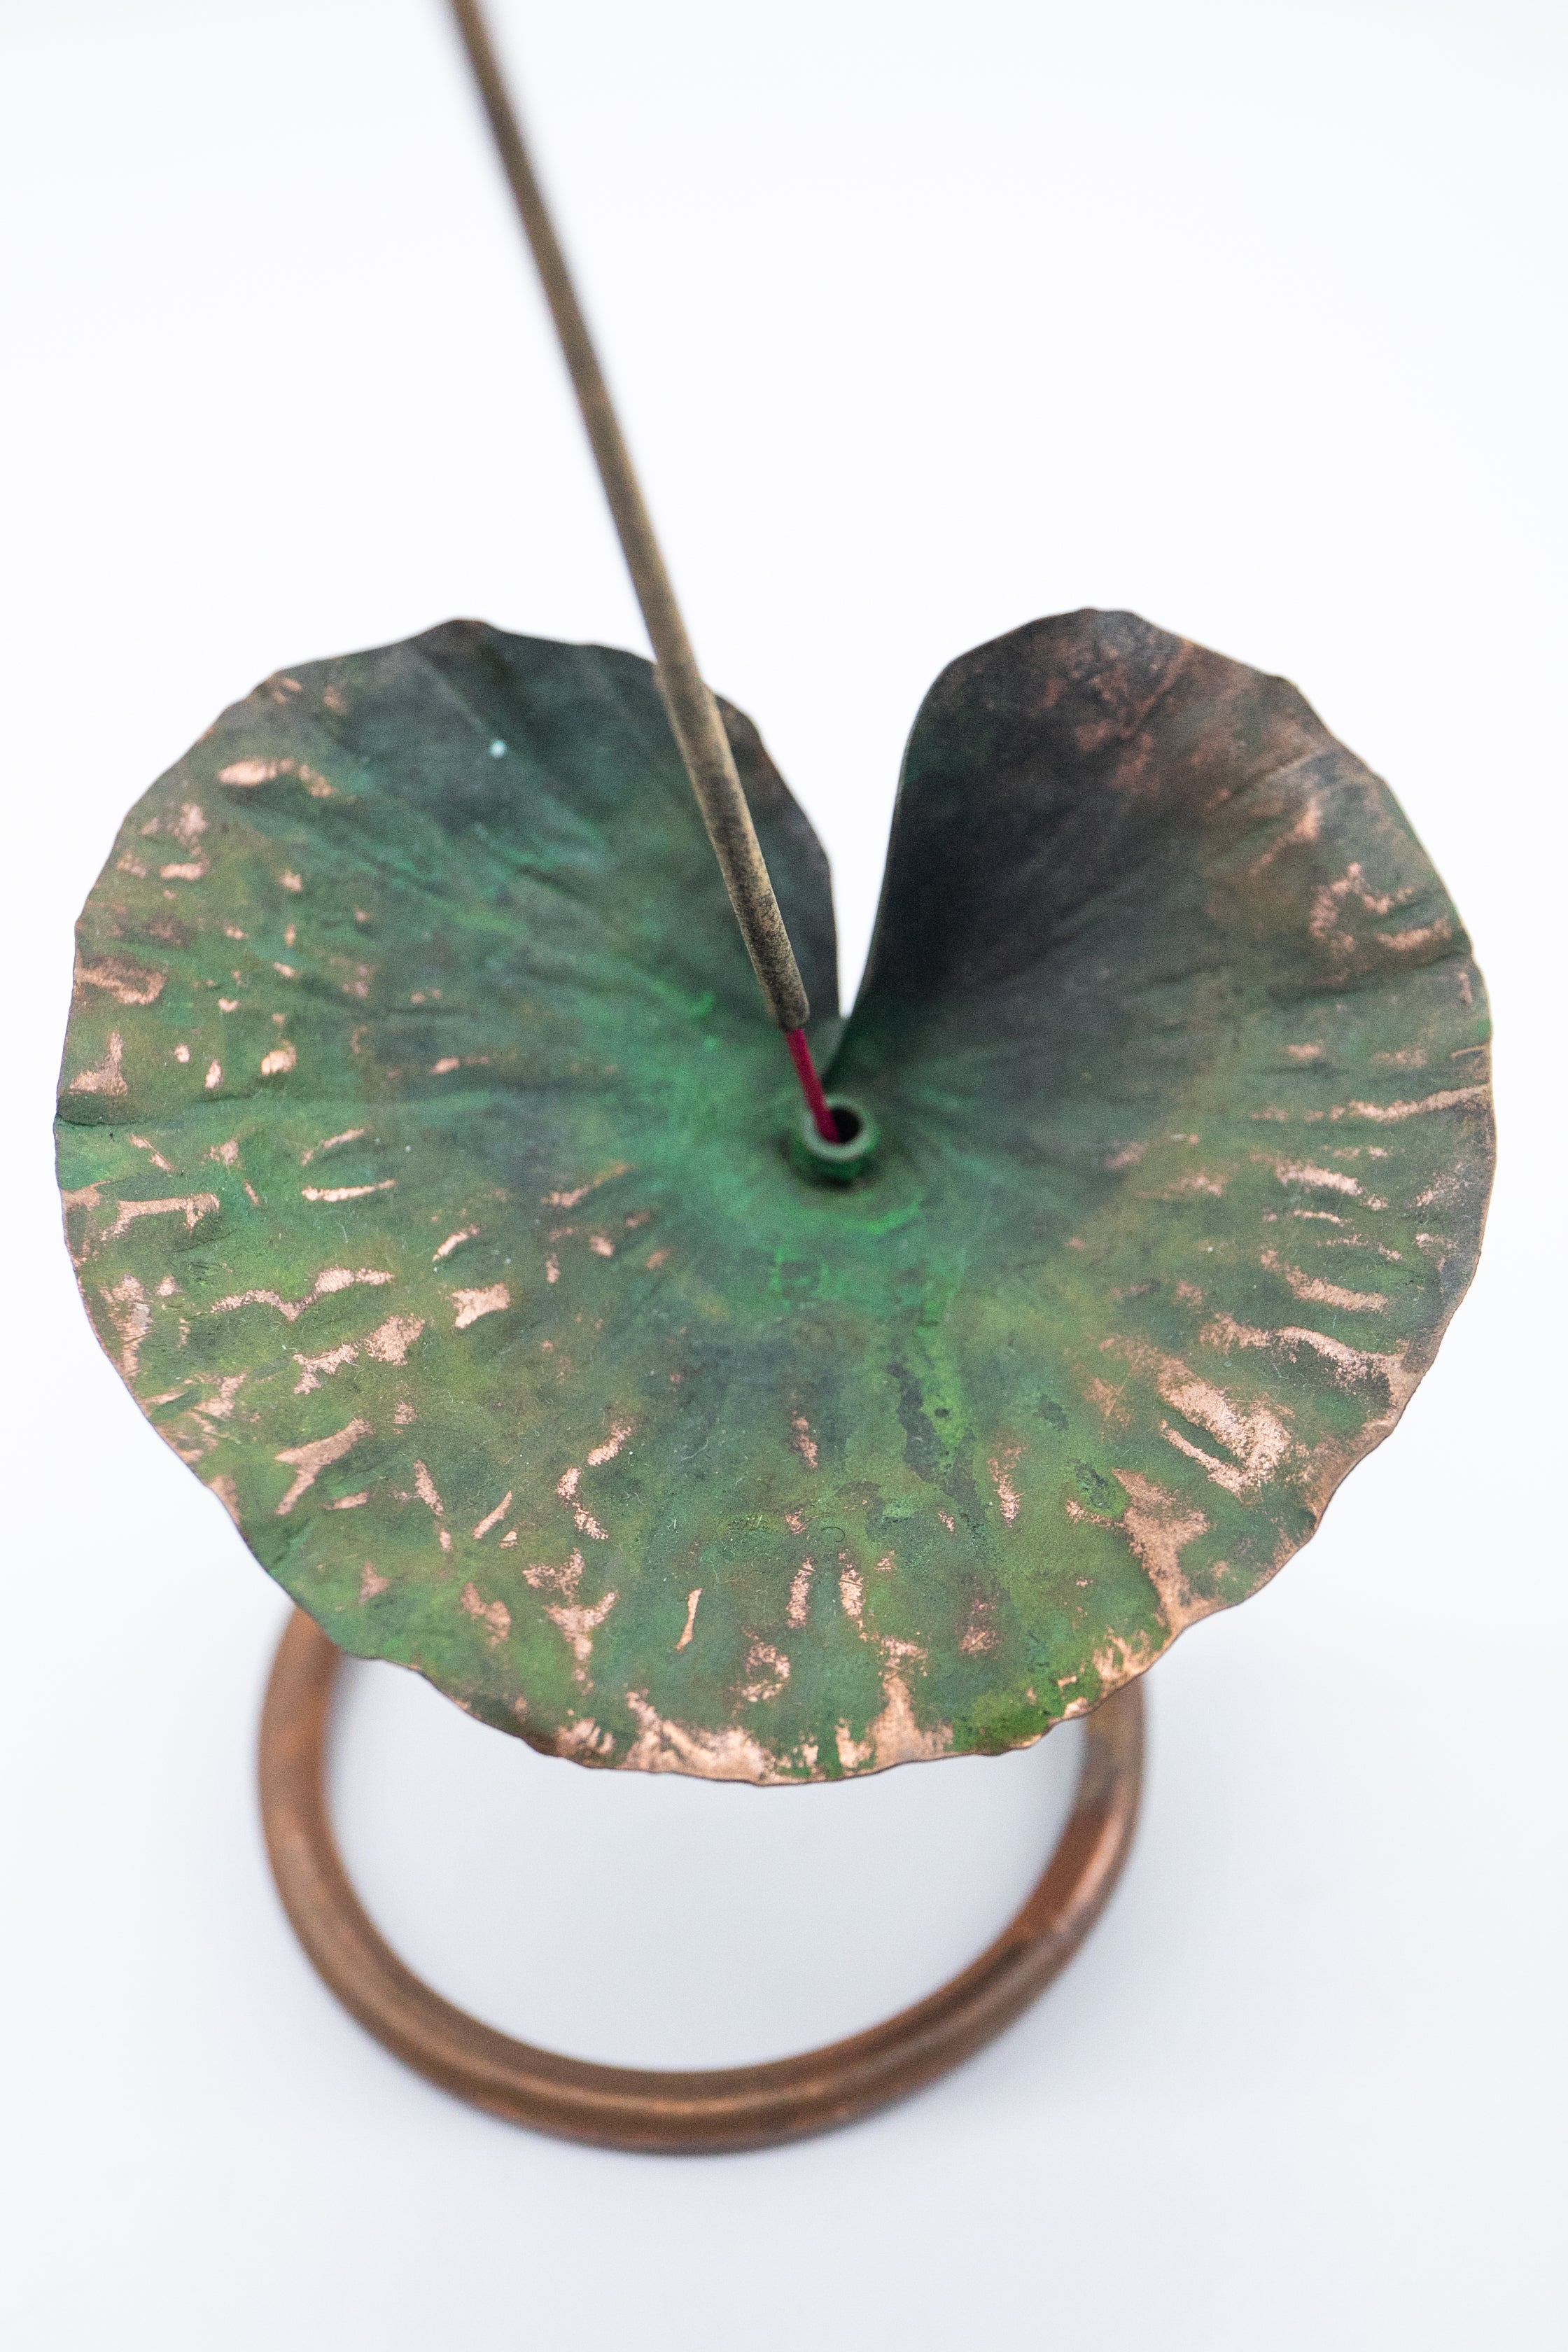 Incense Holder - Handmade Recycled Copper Lotus Leaf on Stand